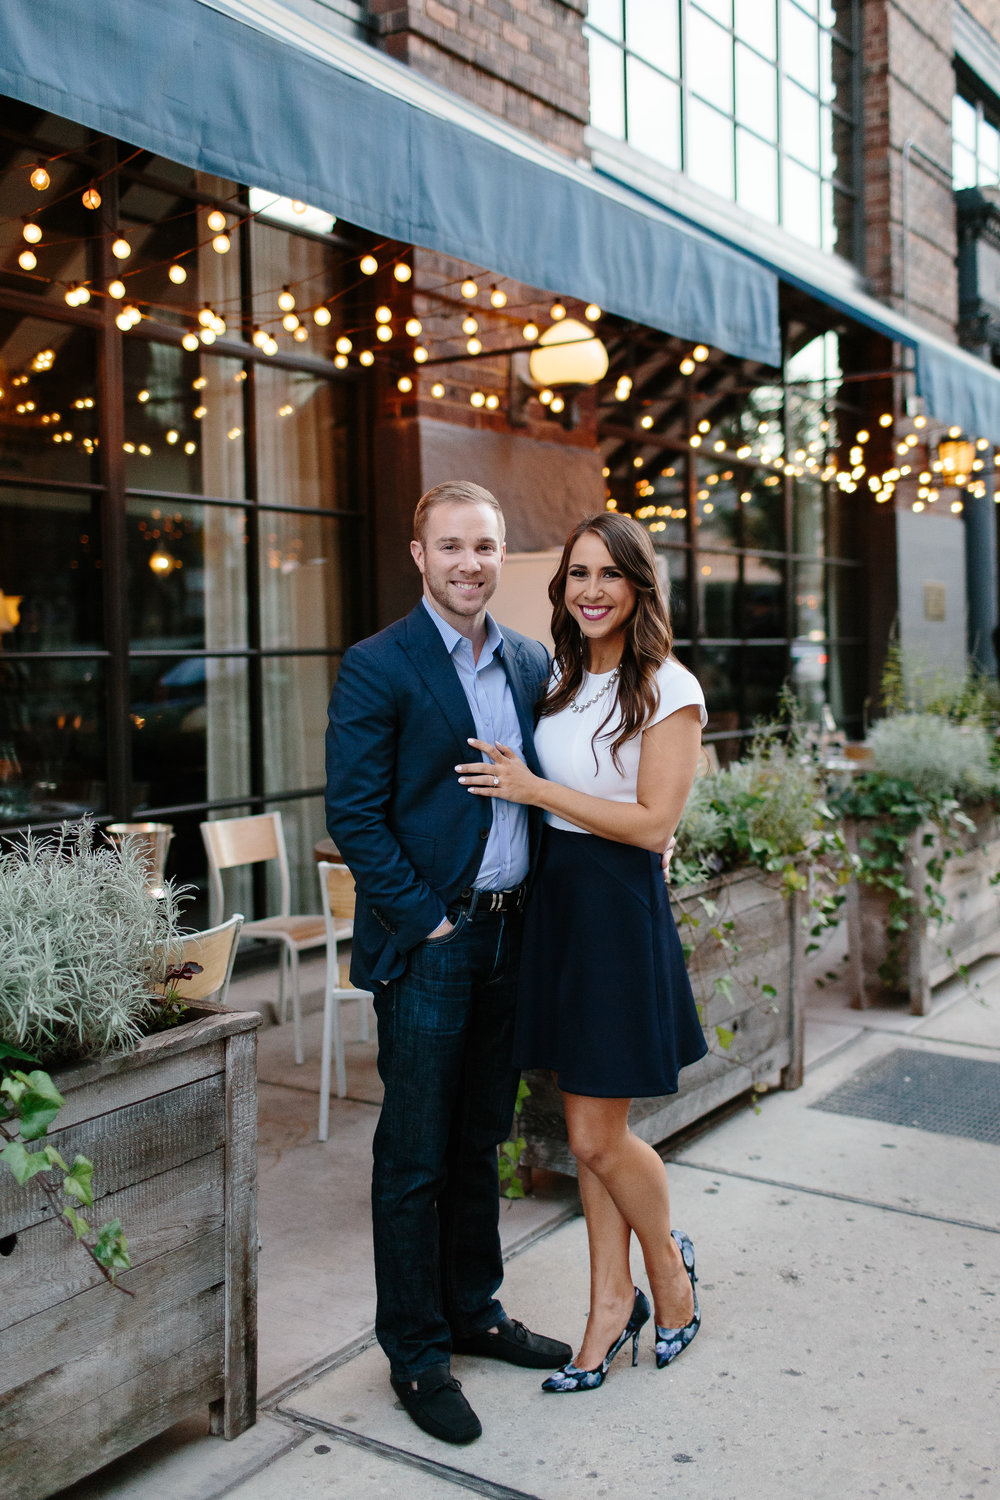 Nicodem Creative-Lotzer Engagement-West Loop Chicago-12.jpg